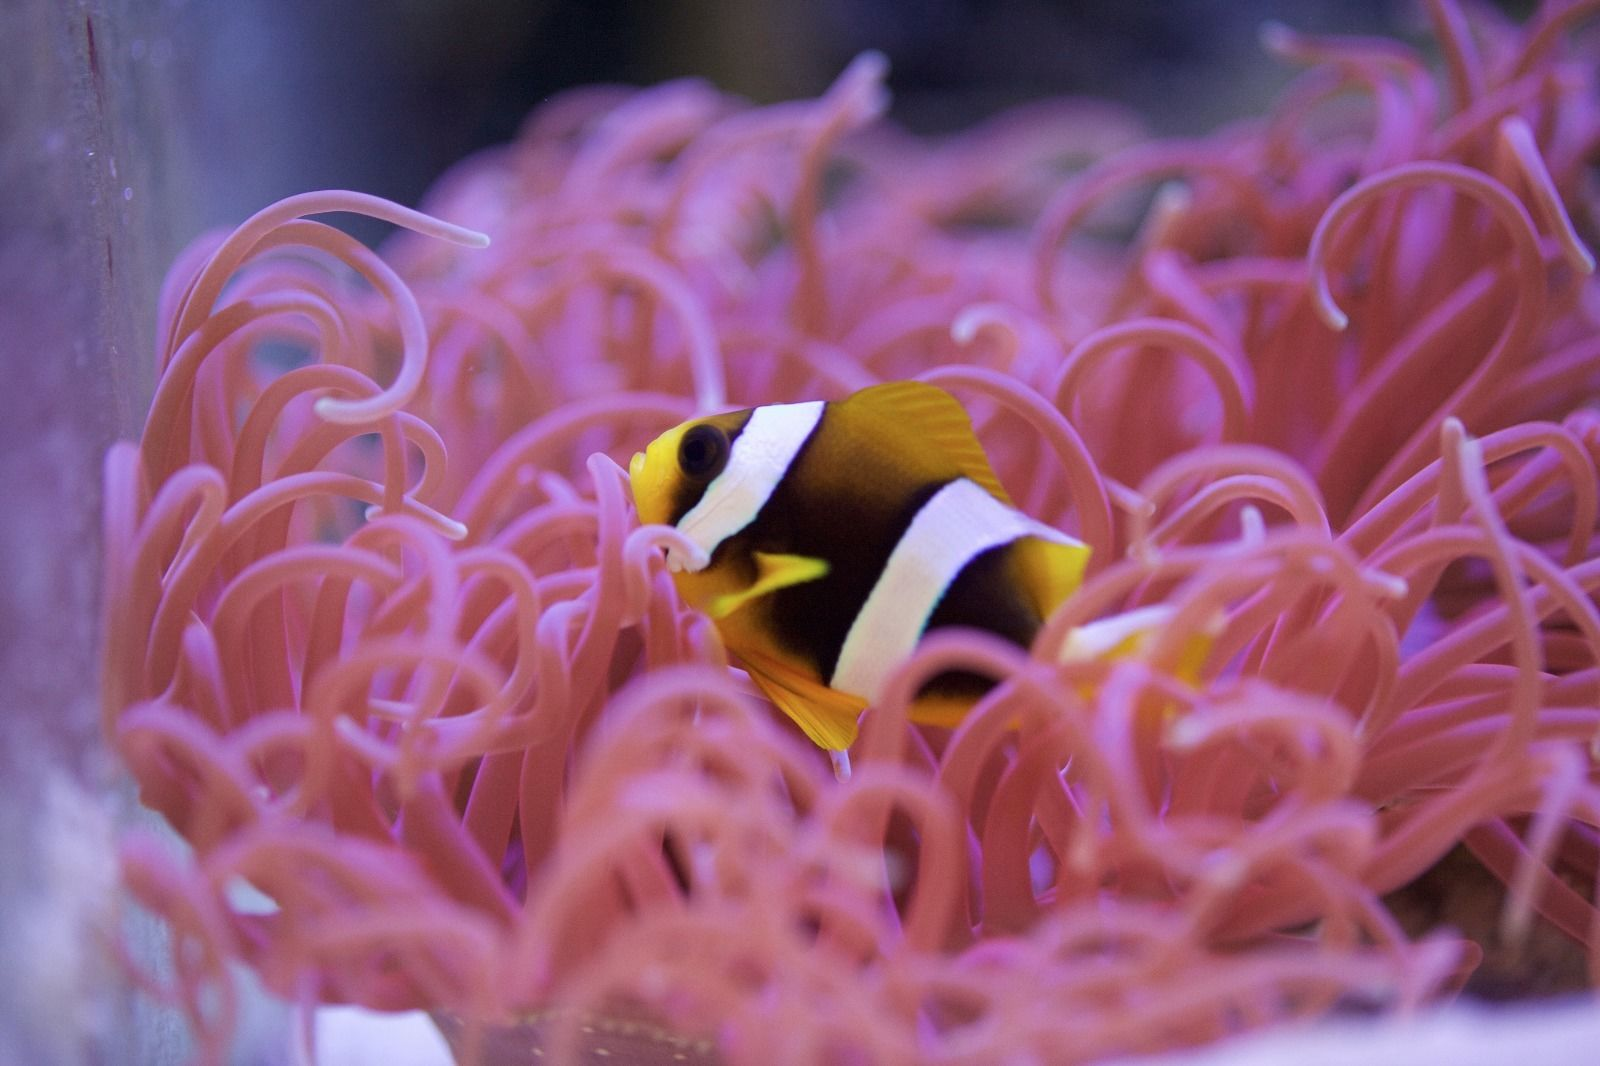 Captive-bred Amphiprion latifasciatus, the Madagascar Clownfish, offered by Ross DeAngelis.